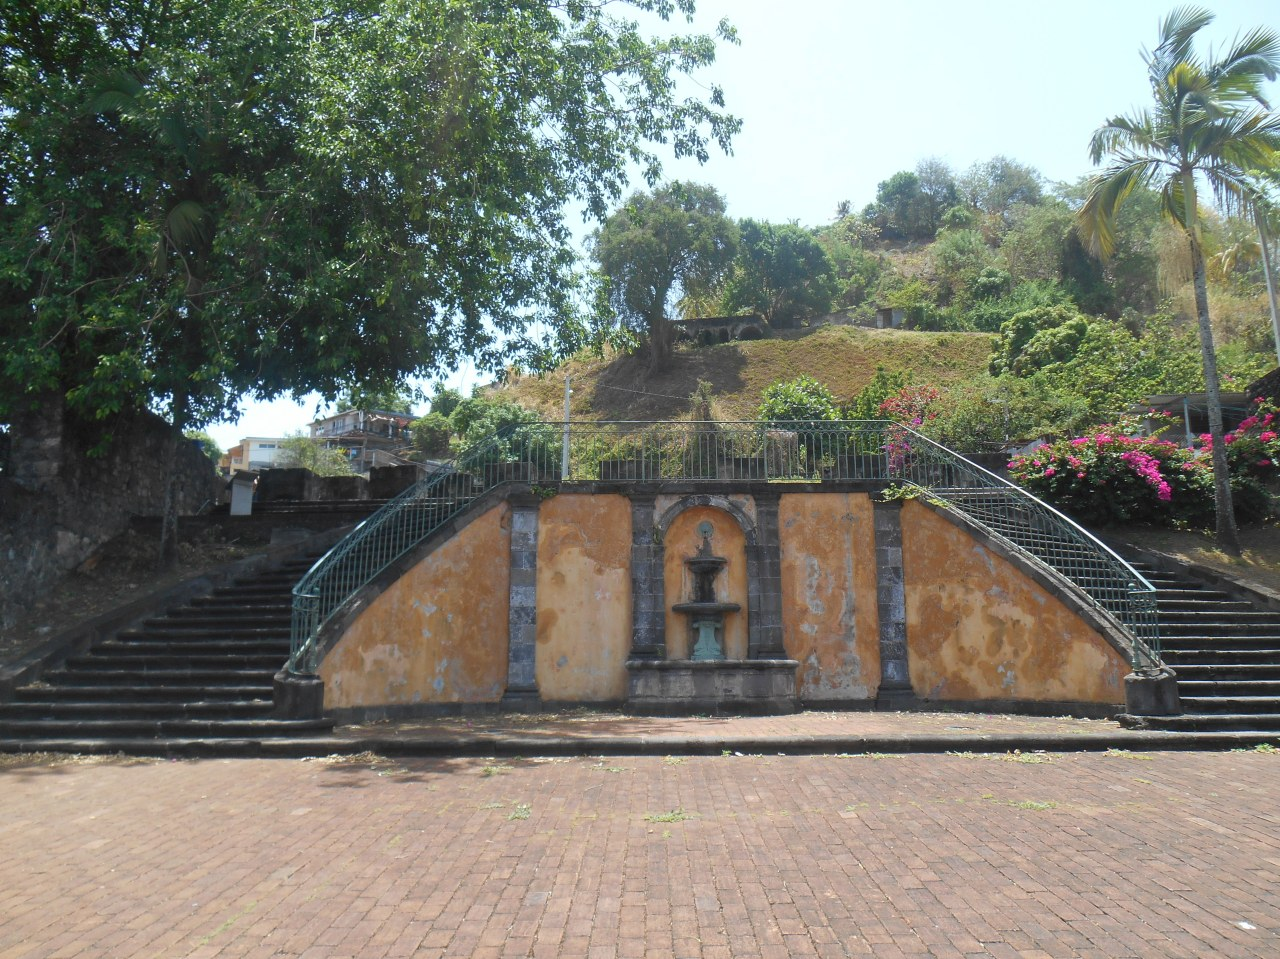 theatre-saint-pierre-martinique.jpg